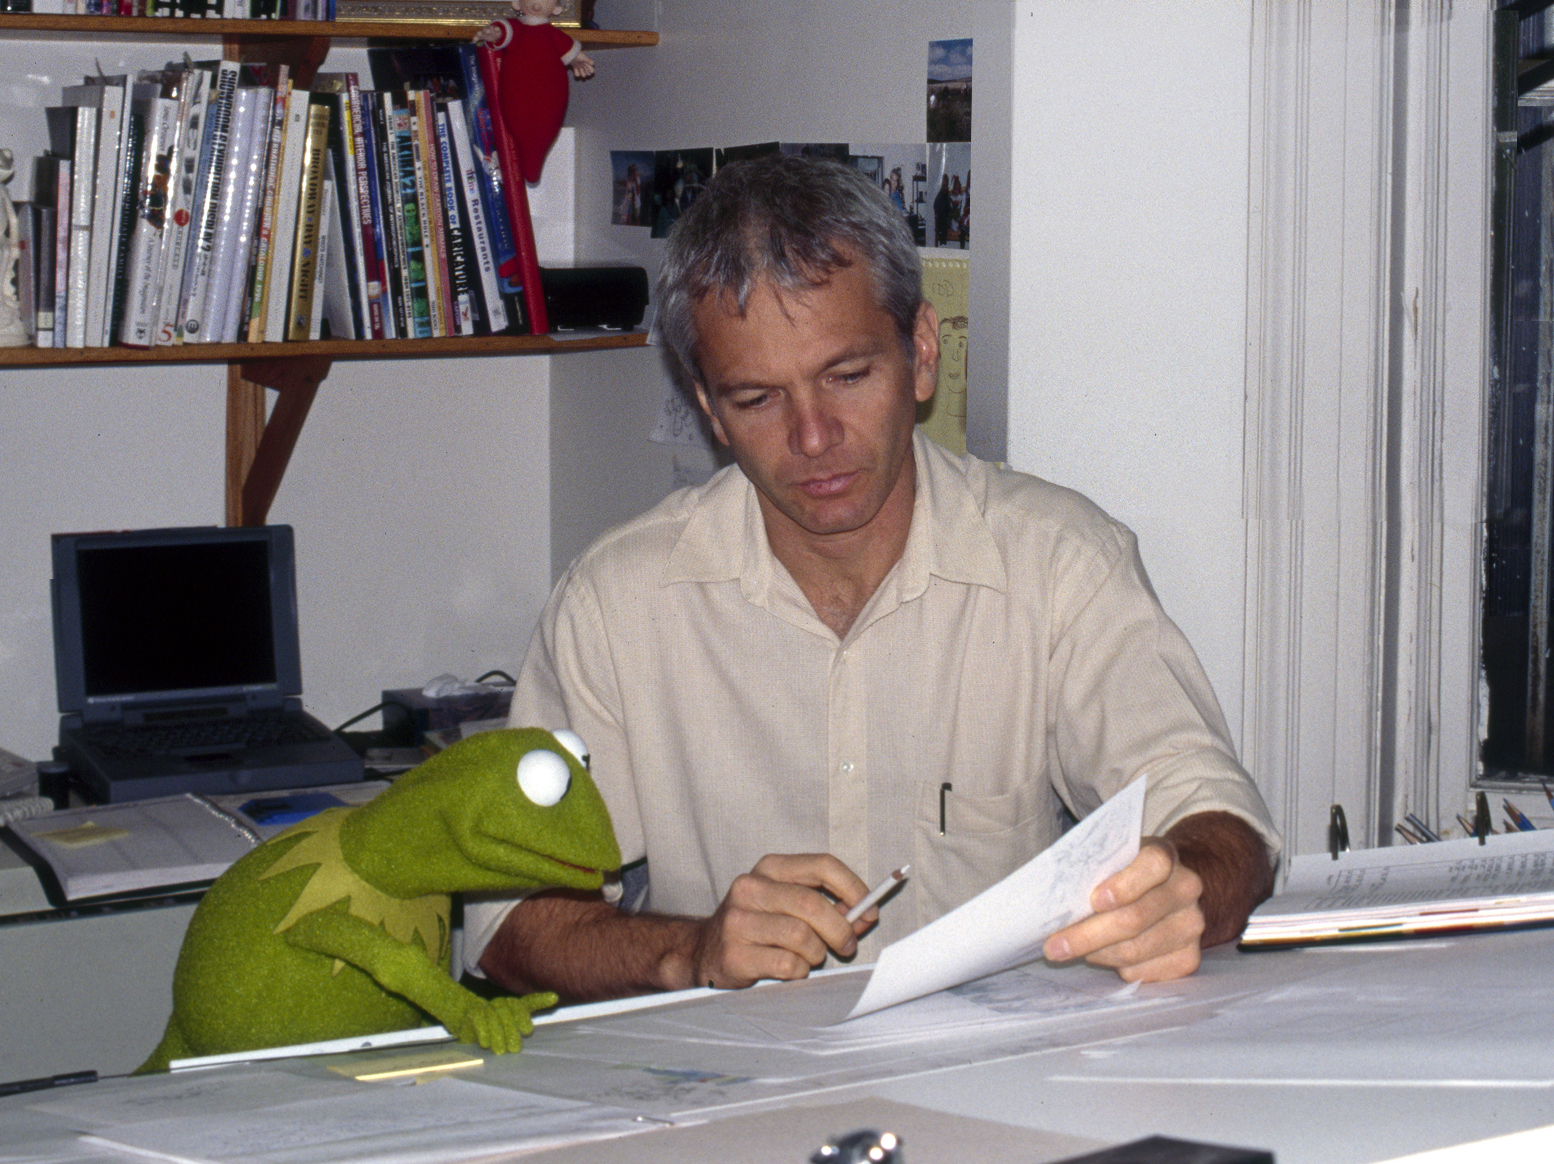 Left to right: Kermit the Frog, Edward Eyth - Creative Director, the Jim Henson Company.